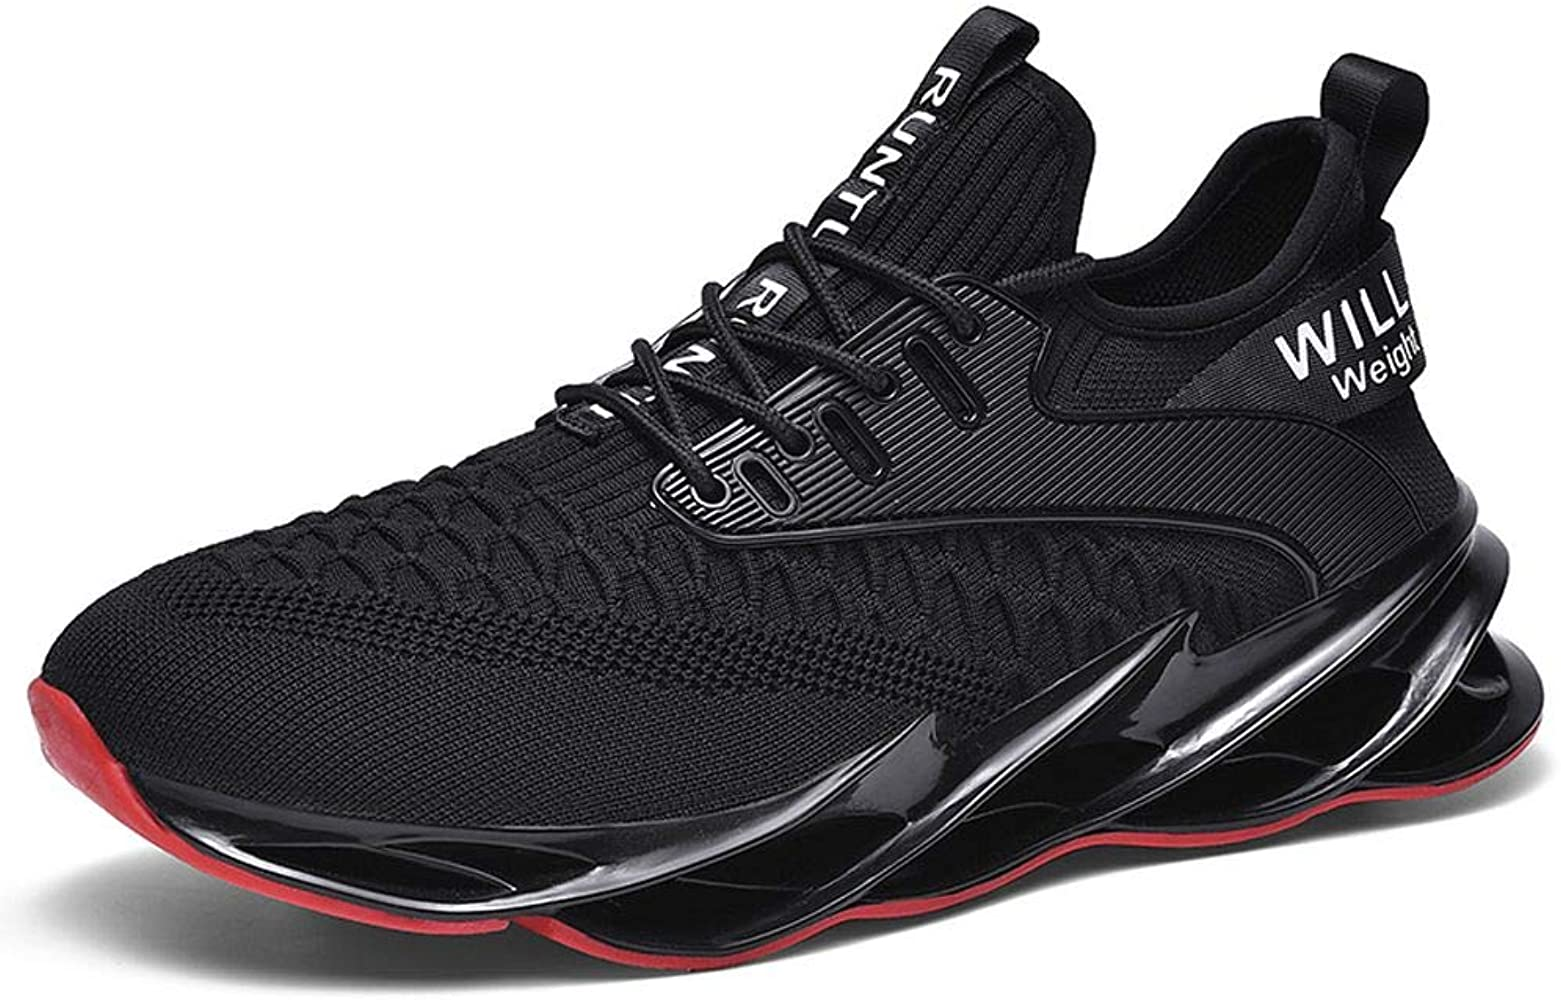 MALAXD Unisex Lightweight Shock Absorption Wave Outsole Mesh Sneakers Tennis Road Running Gym Shoes